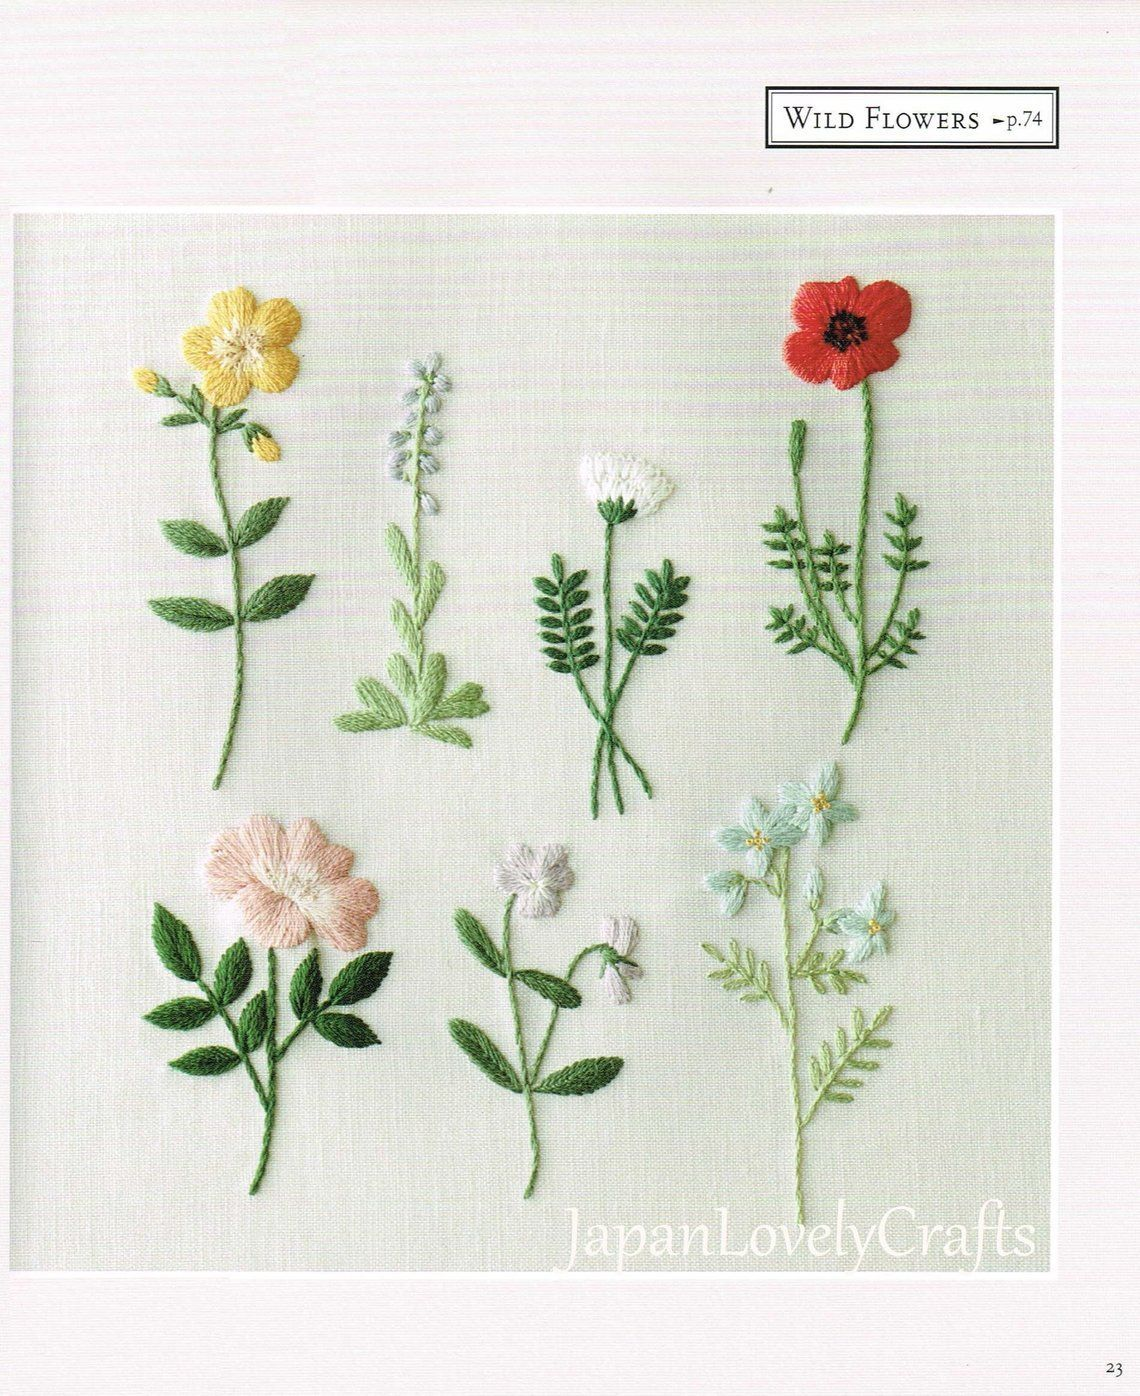 Floral Embroidery Pattern For Beginners In 2020 Embroidery Patterns Vintage Japanese Embroidery Embroidery Flowers